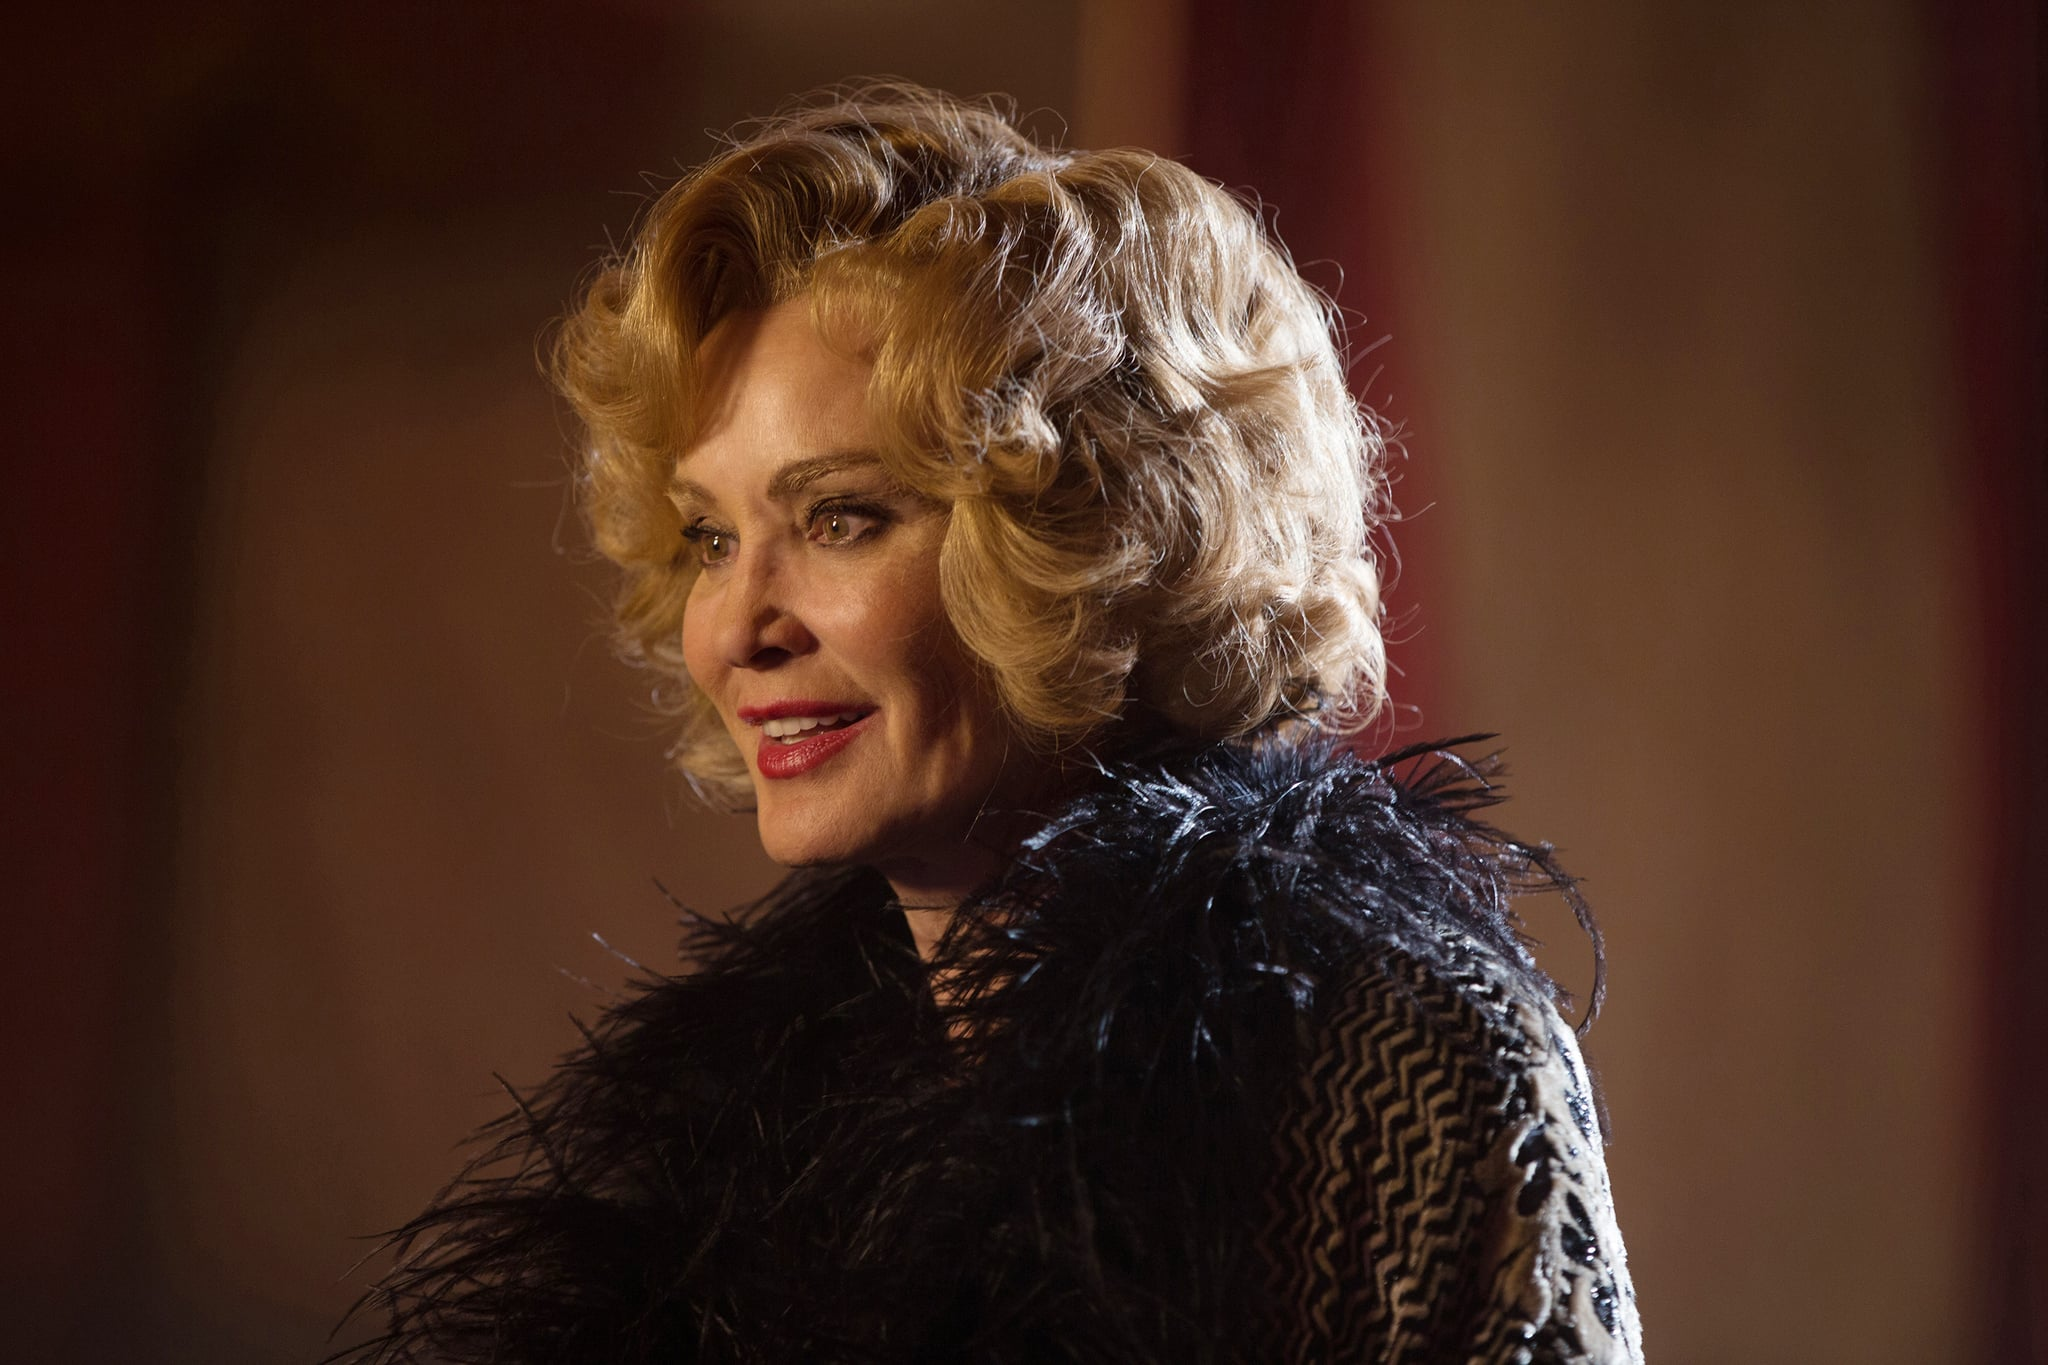 AMERICAN HORROR STORY: FREAK SHOW, Jessica Lange in 'Curtain Call' (Season 4, Episode 13, aired January 21, 2015). ph: Sam Lothridge/FX/courtesy Everett Collection